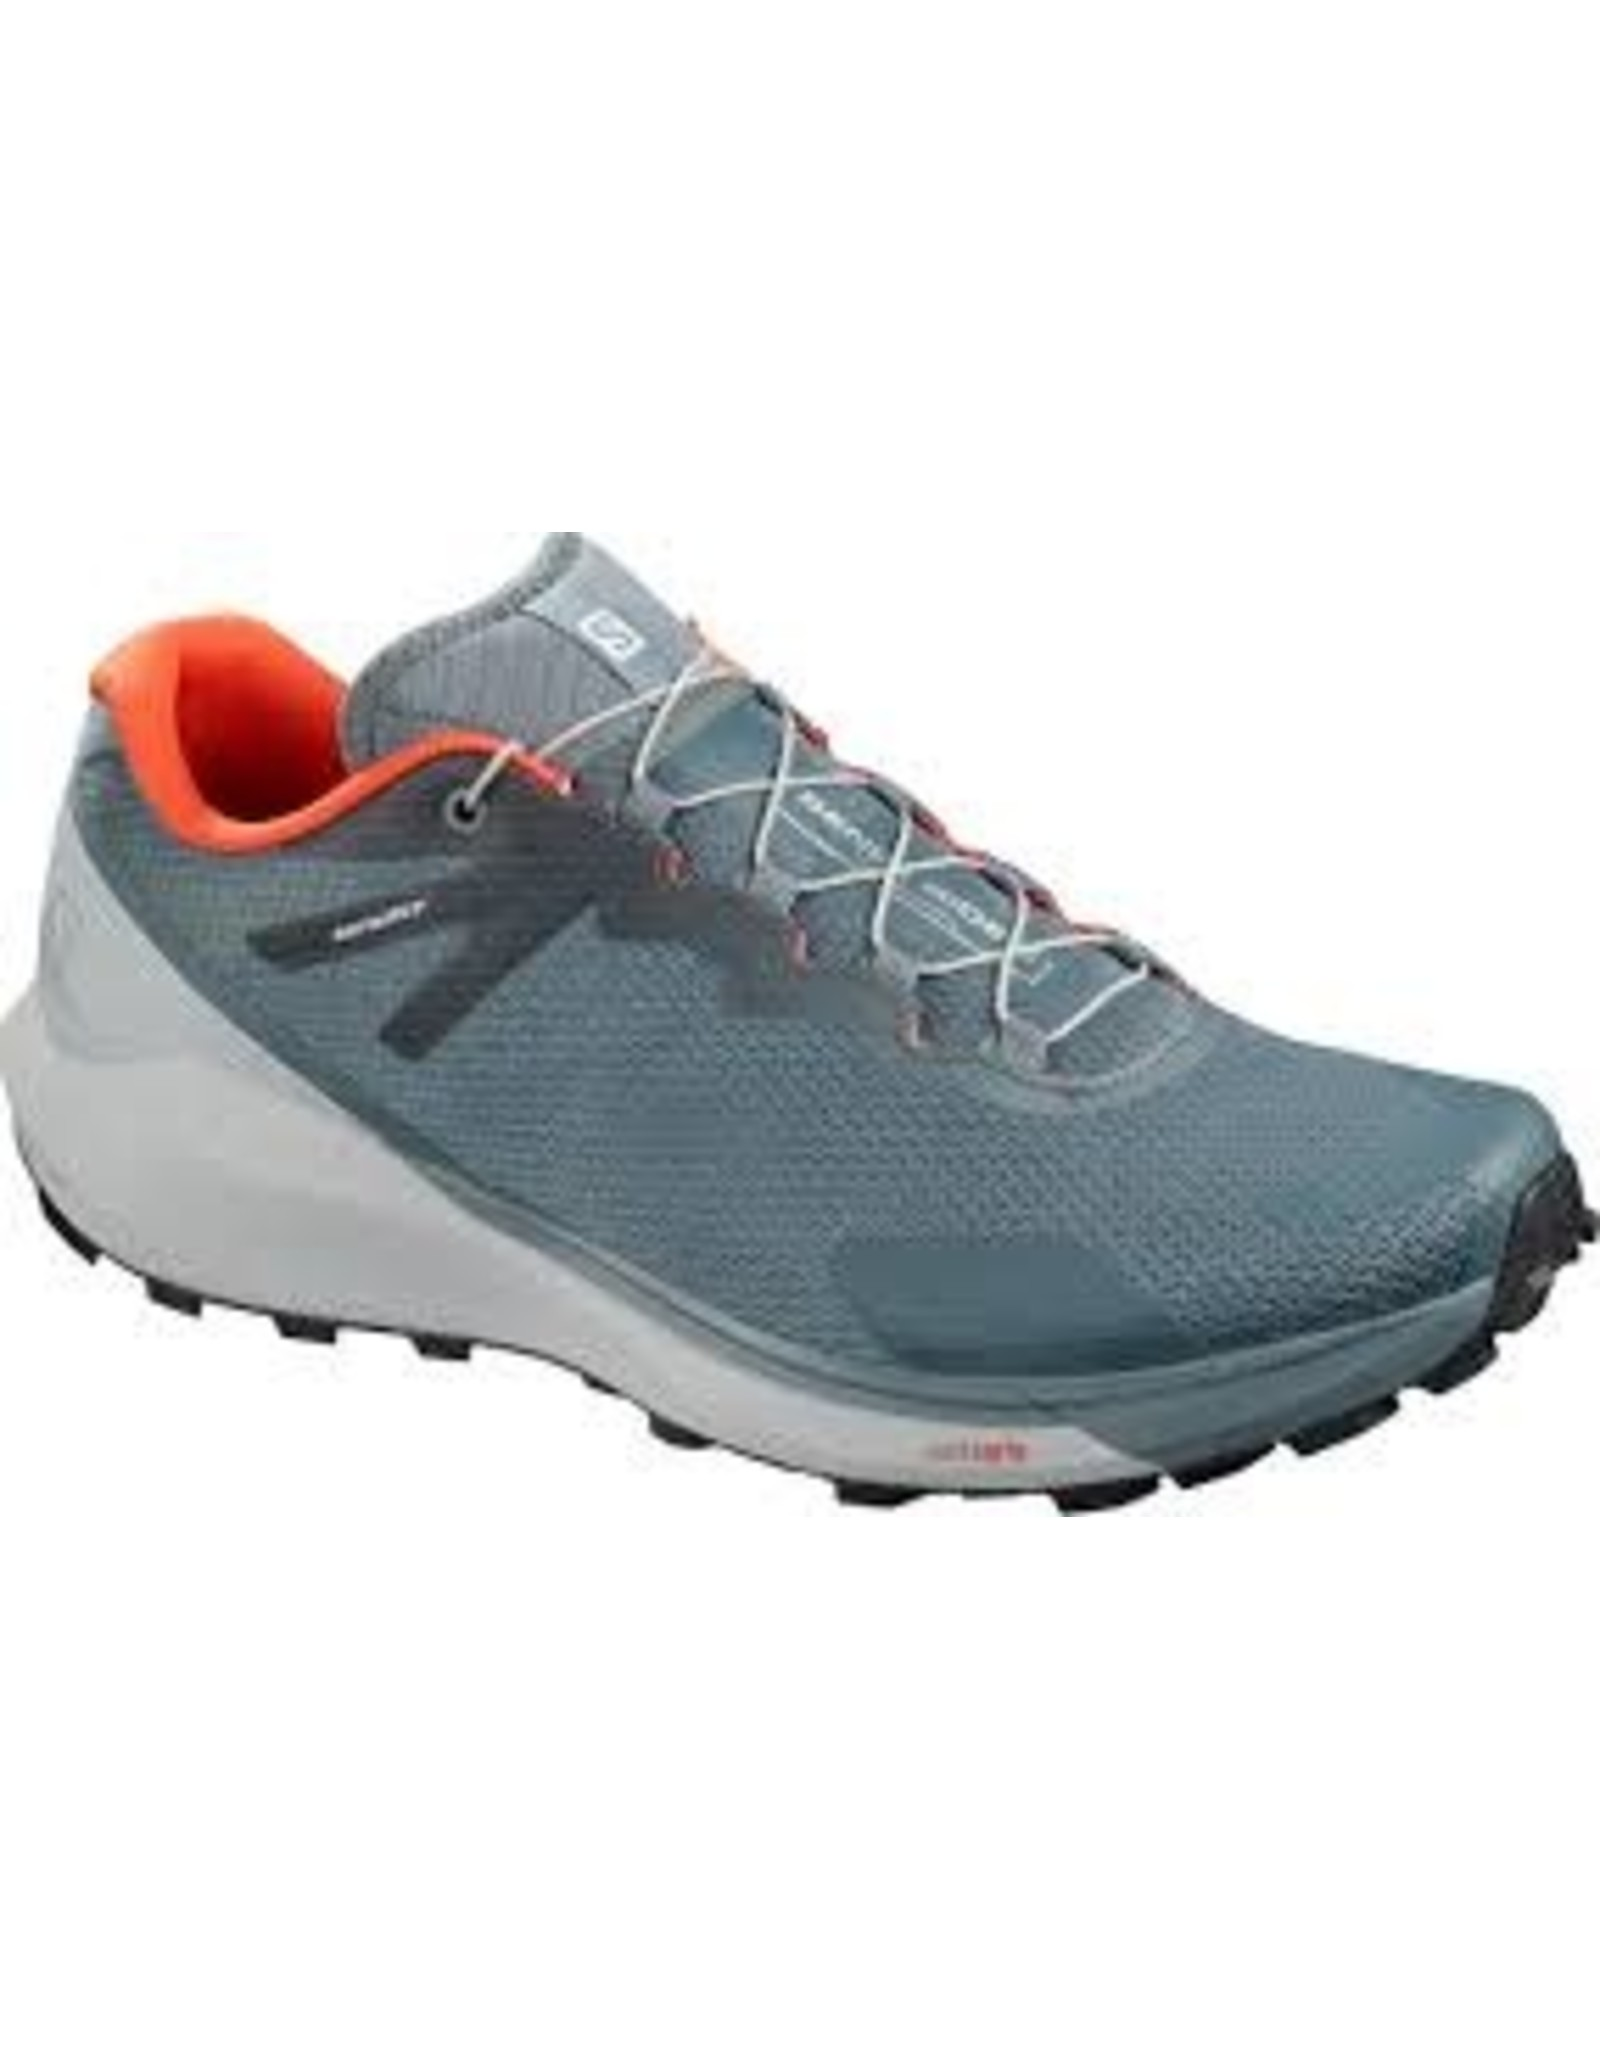 SALOMON SHOES SALOMON SENSE RIDE 3